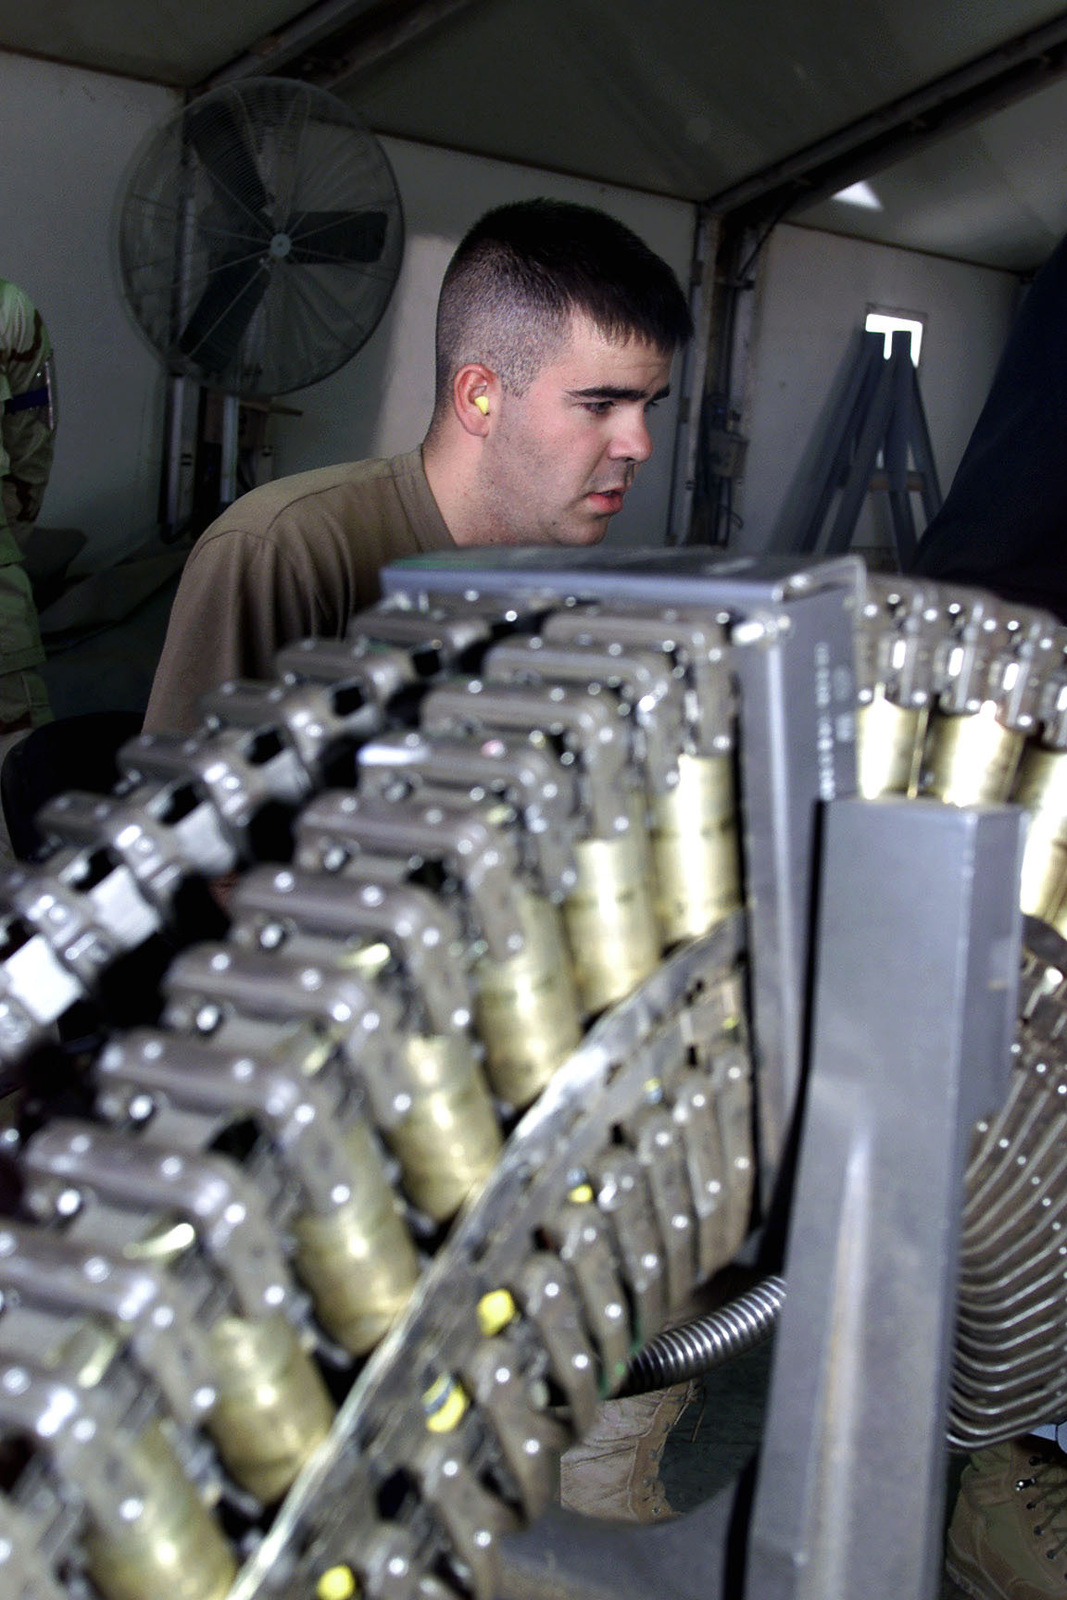 US Air Force AIRMAN First Class Lance Peak, 363rd Expeditionary Maintenance Squadron, Prince Sultan Air Base, Saudi Arabia, loads 20mm rounds into a universal ammunition loading system. A1C Peak is part of the coalition force here to support Operation SOUTHERN WATCH, a military effort to enforce the no-fly and no-drive zone in Southern Iraq